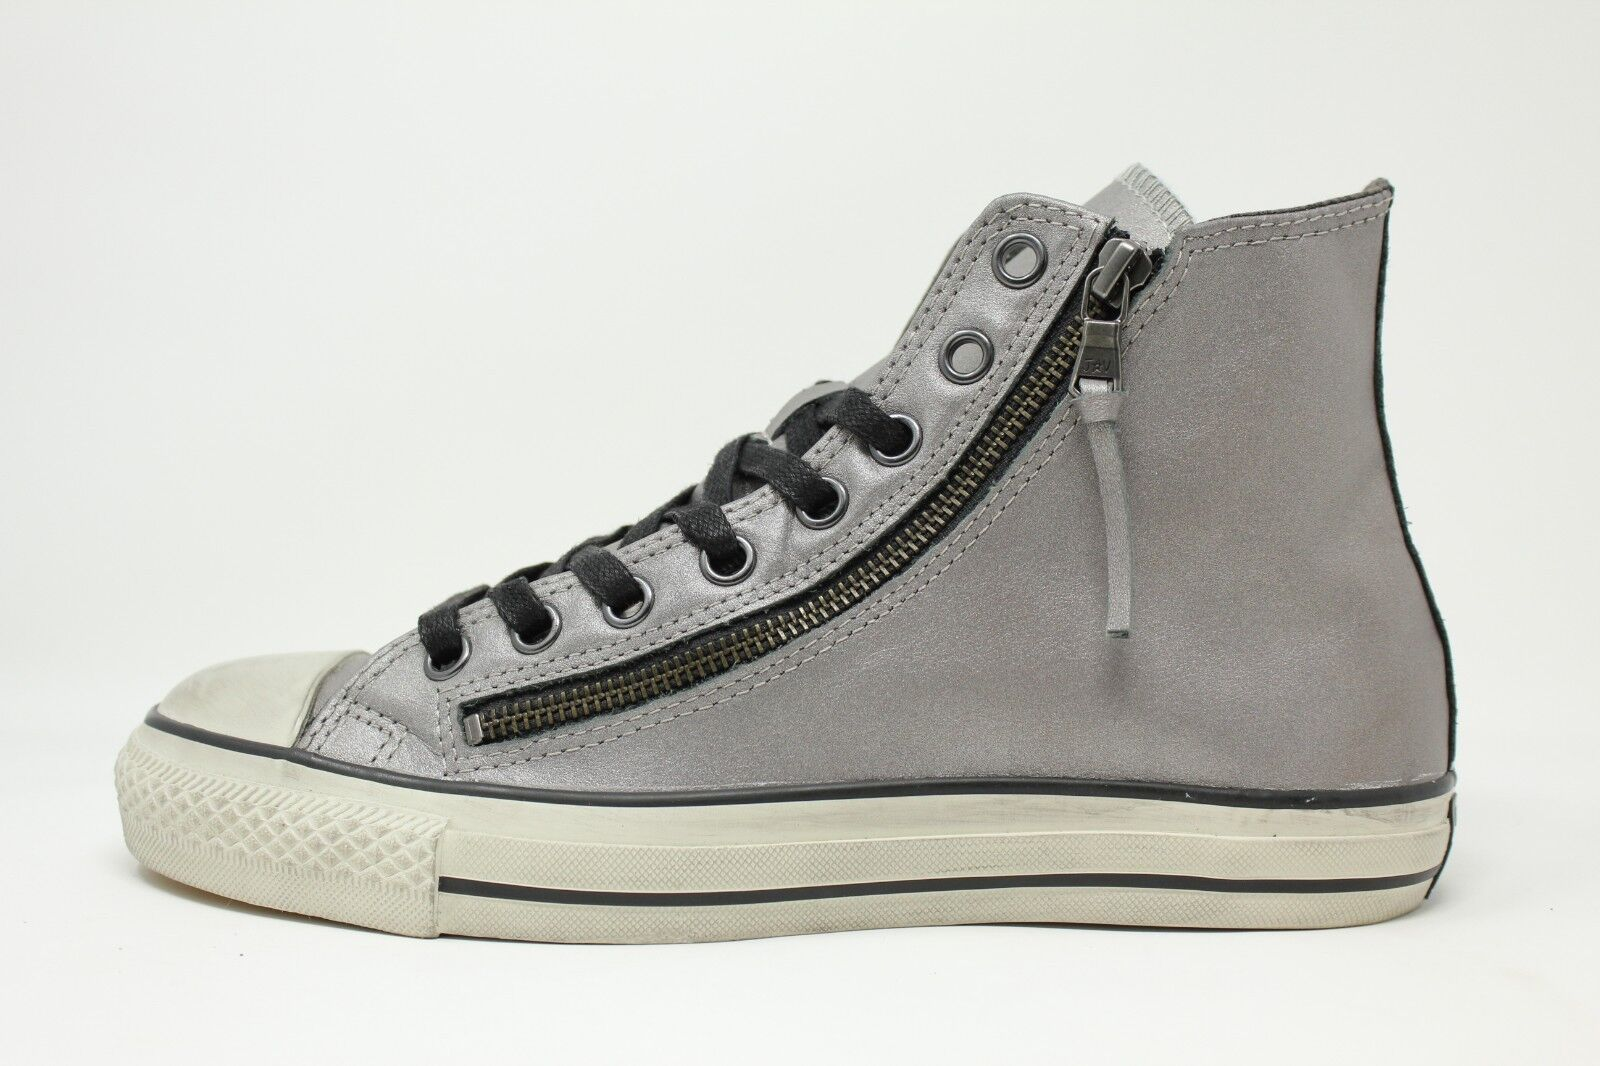 Converse CT Brush Double Zip John Varvatos     147377C Silber Men 7 - 13 55% OFF f28ad1